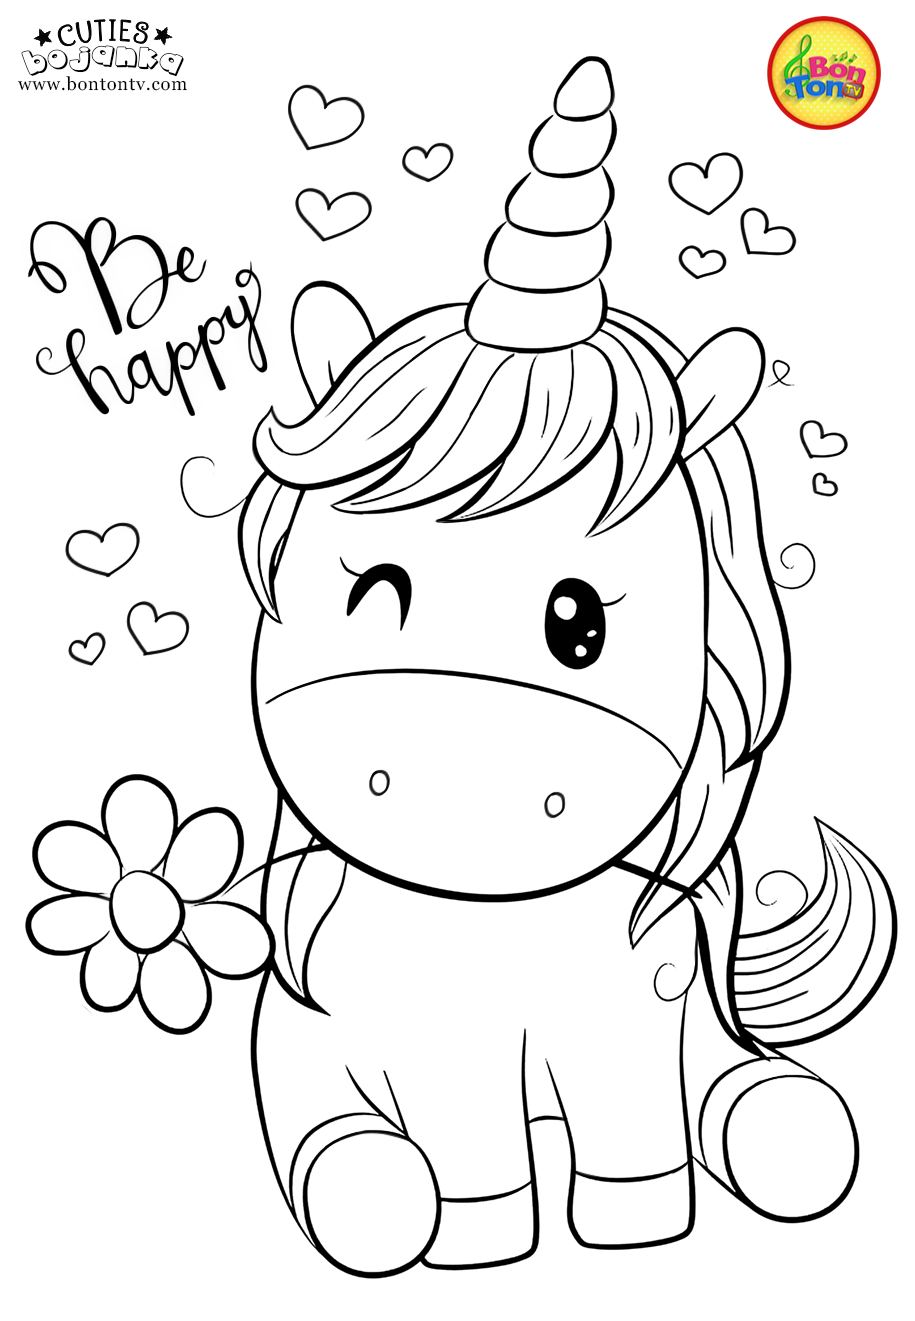 Fantastic Cost Free Kids Coloring Books Ideas Right Here Is The Final Secrets And Technique In 2021 Preschool Coloring Pages Unicorn Coloring Pages Kids Coloring Books